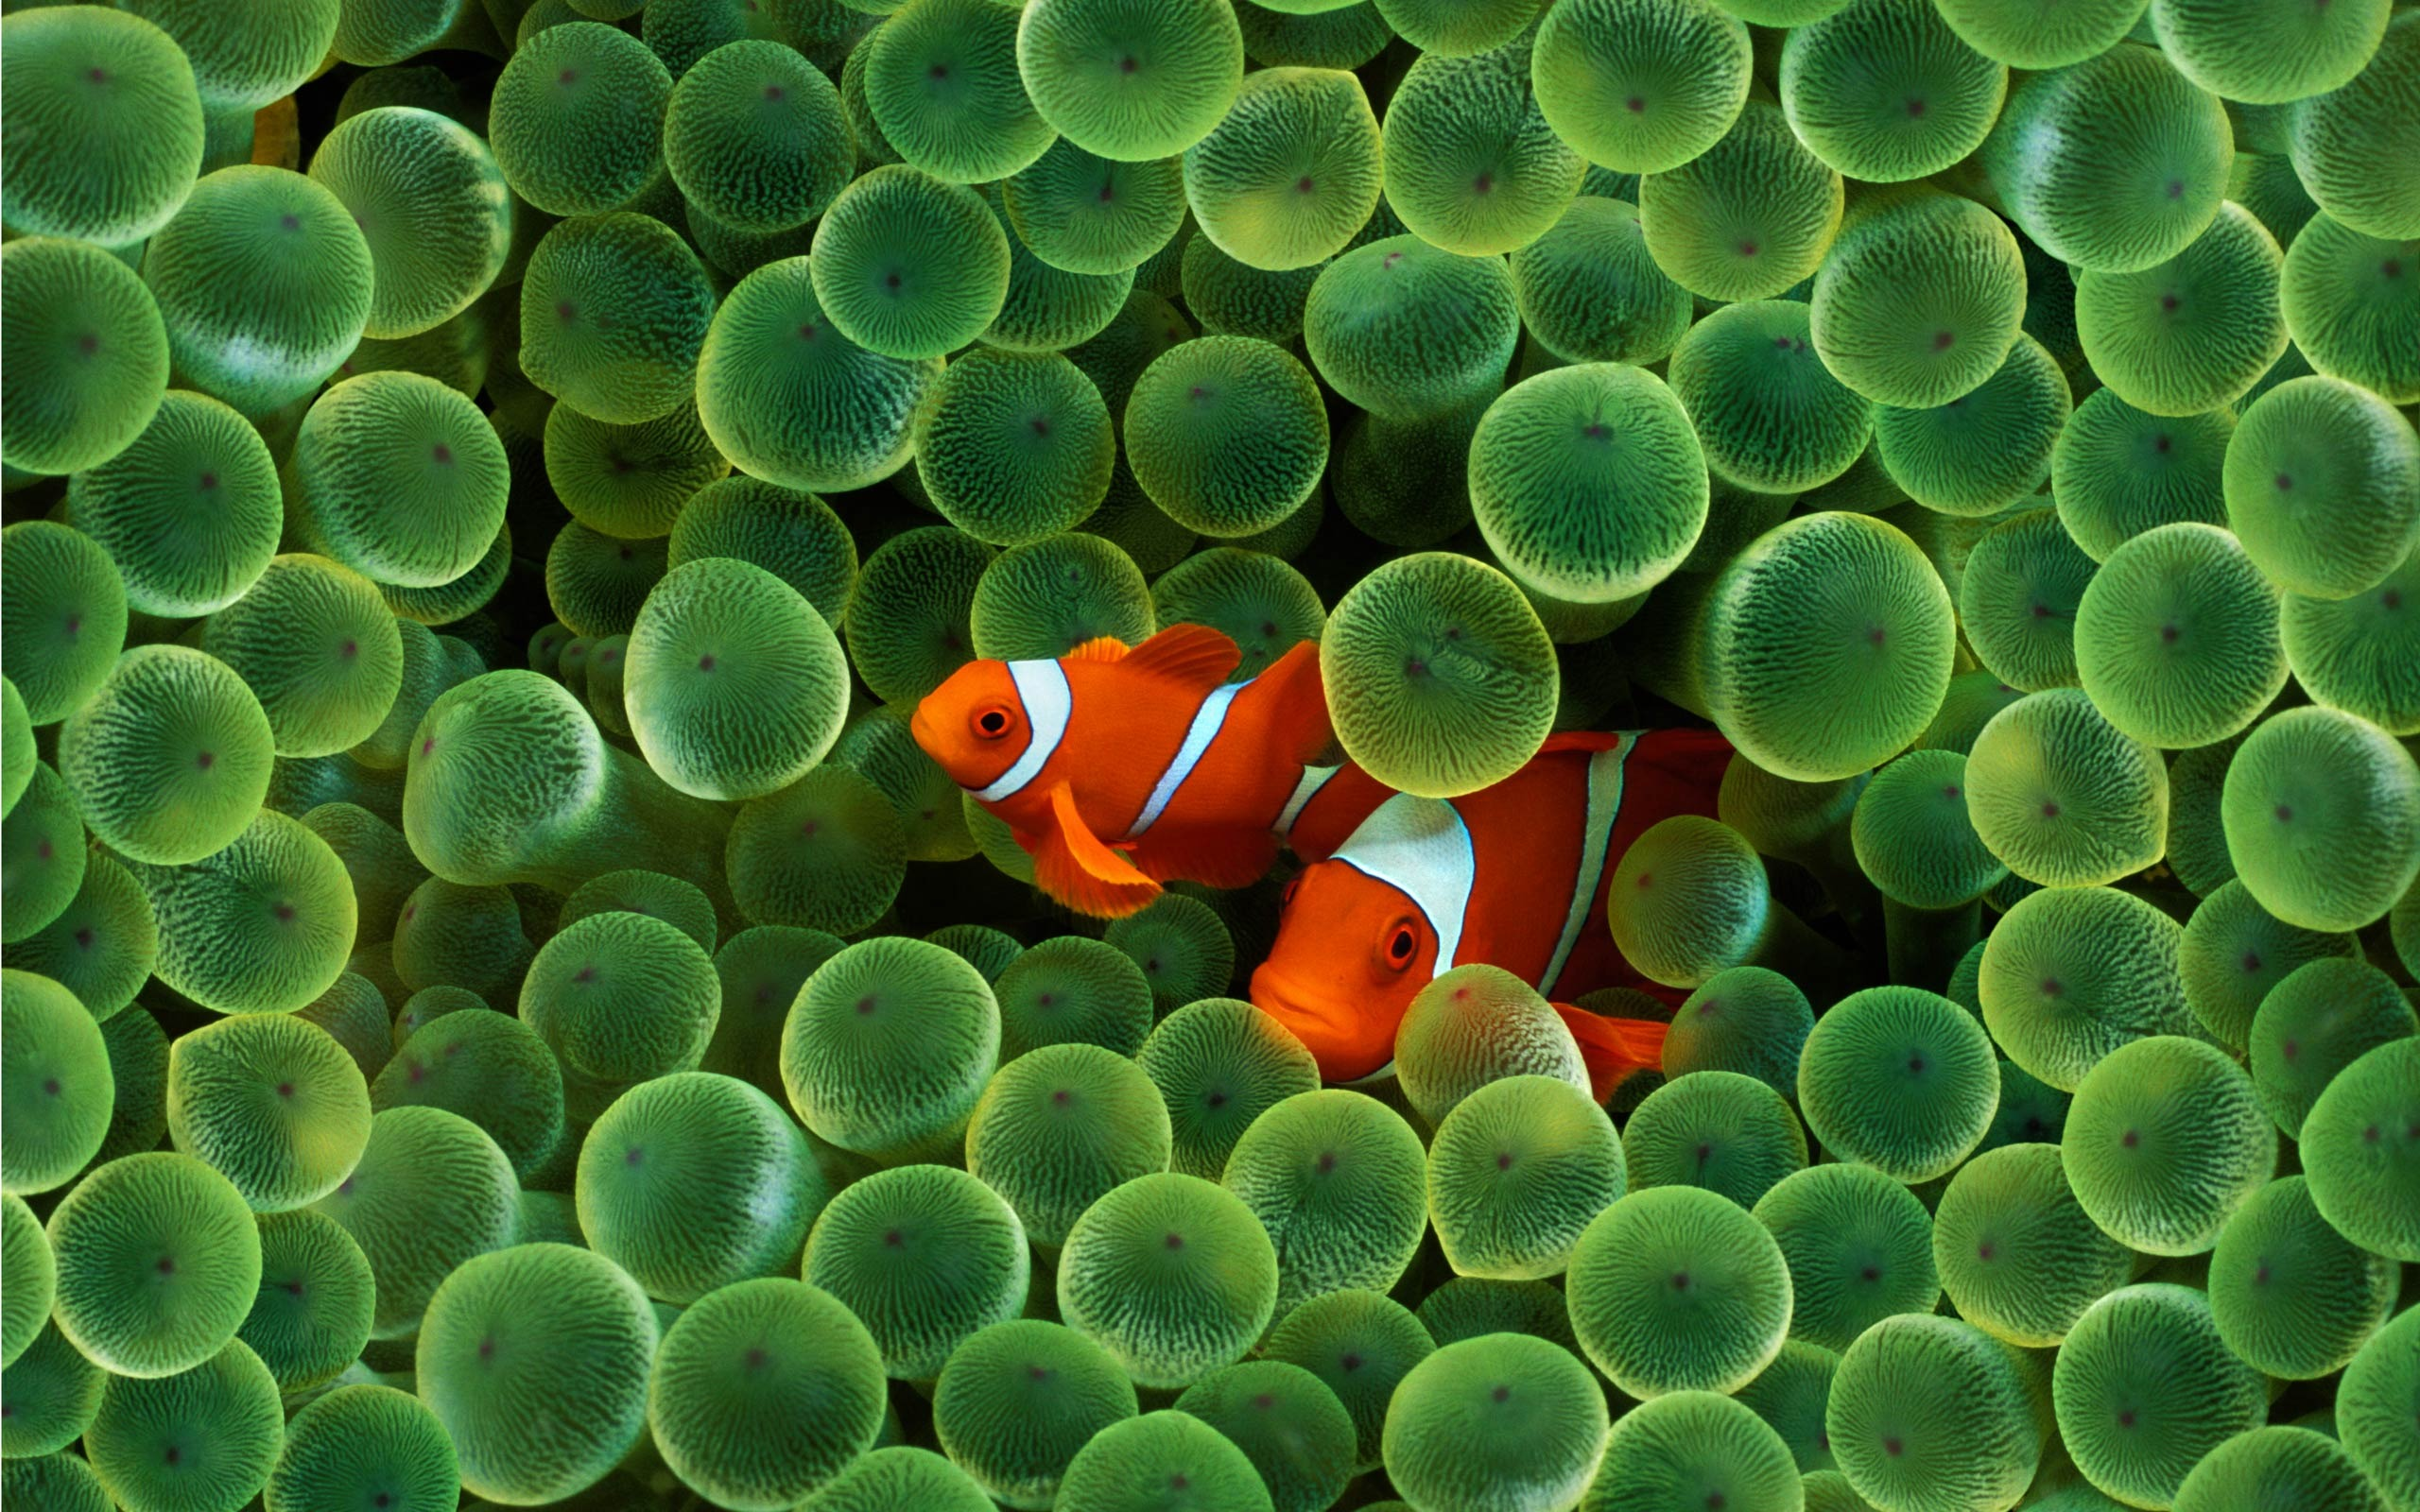 Clown Fish Wallpaper Fish Animals Wallpapers in jpg format for